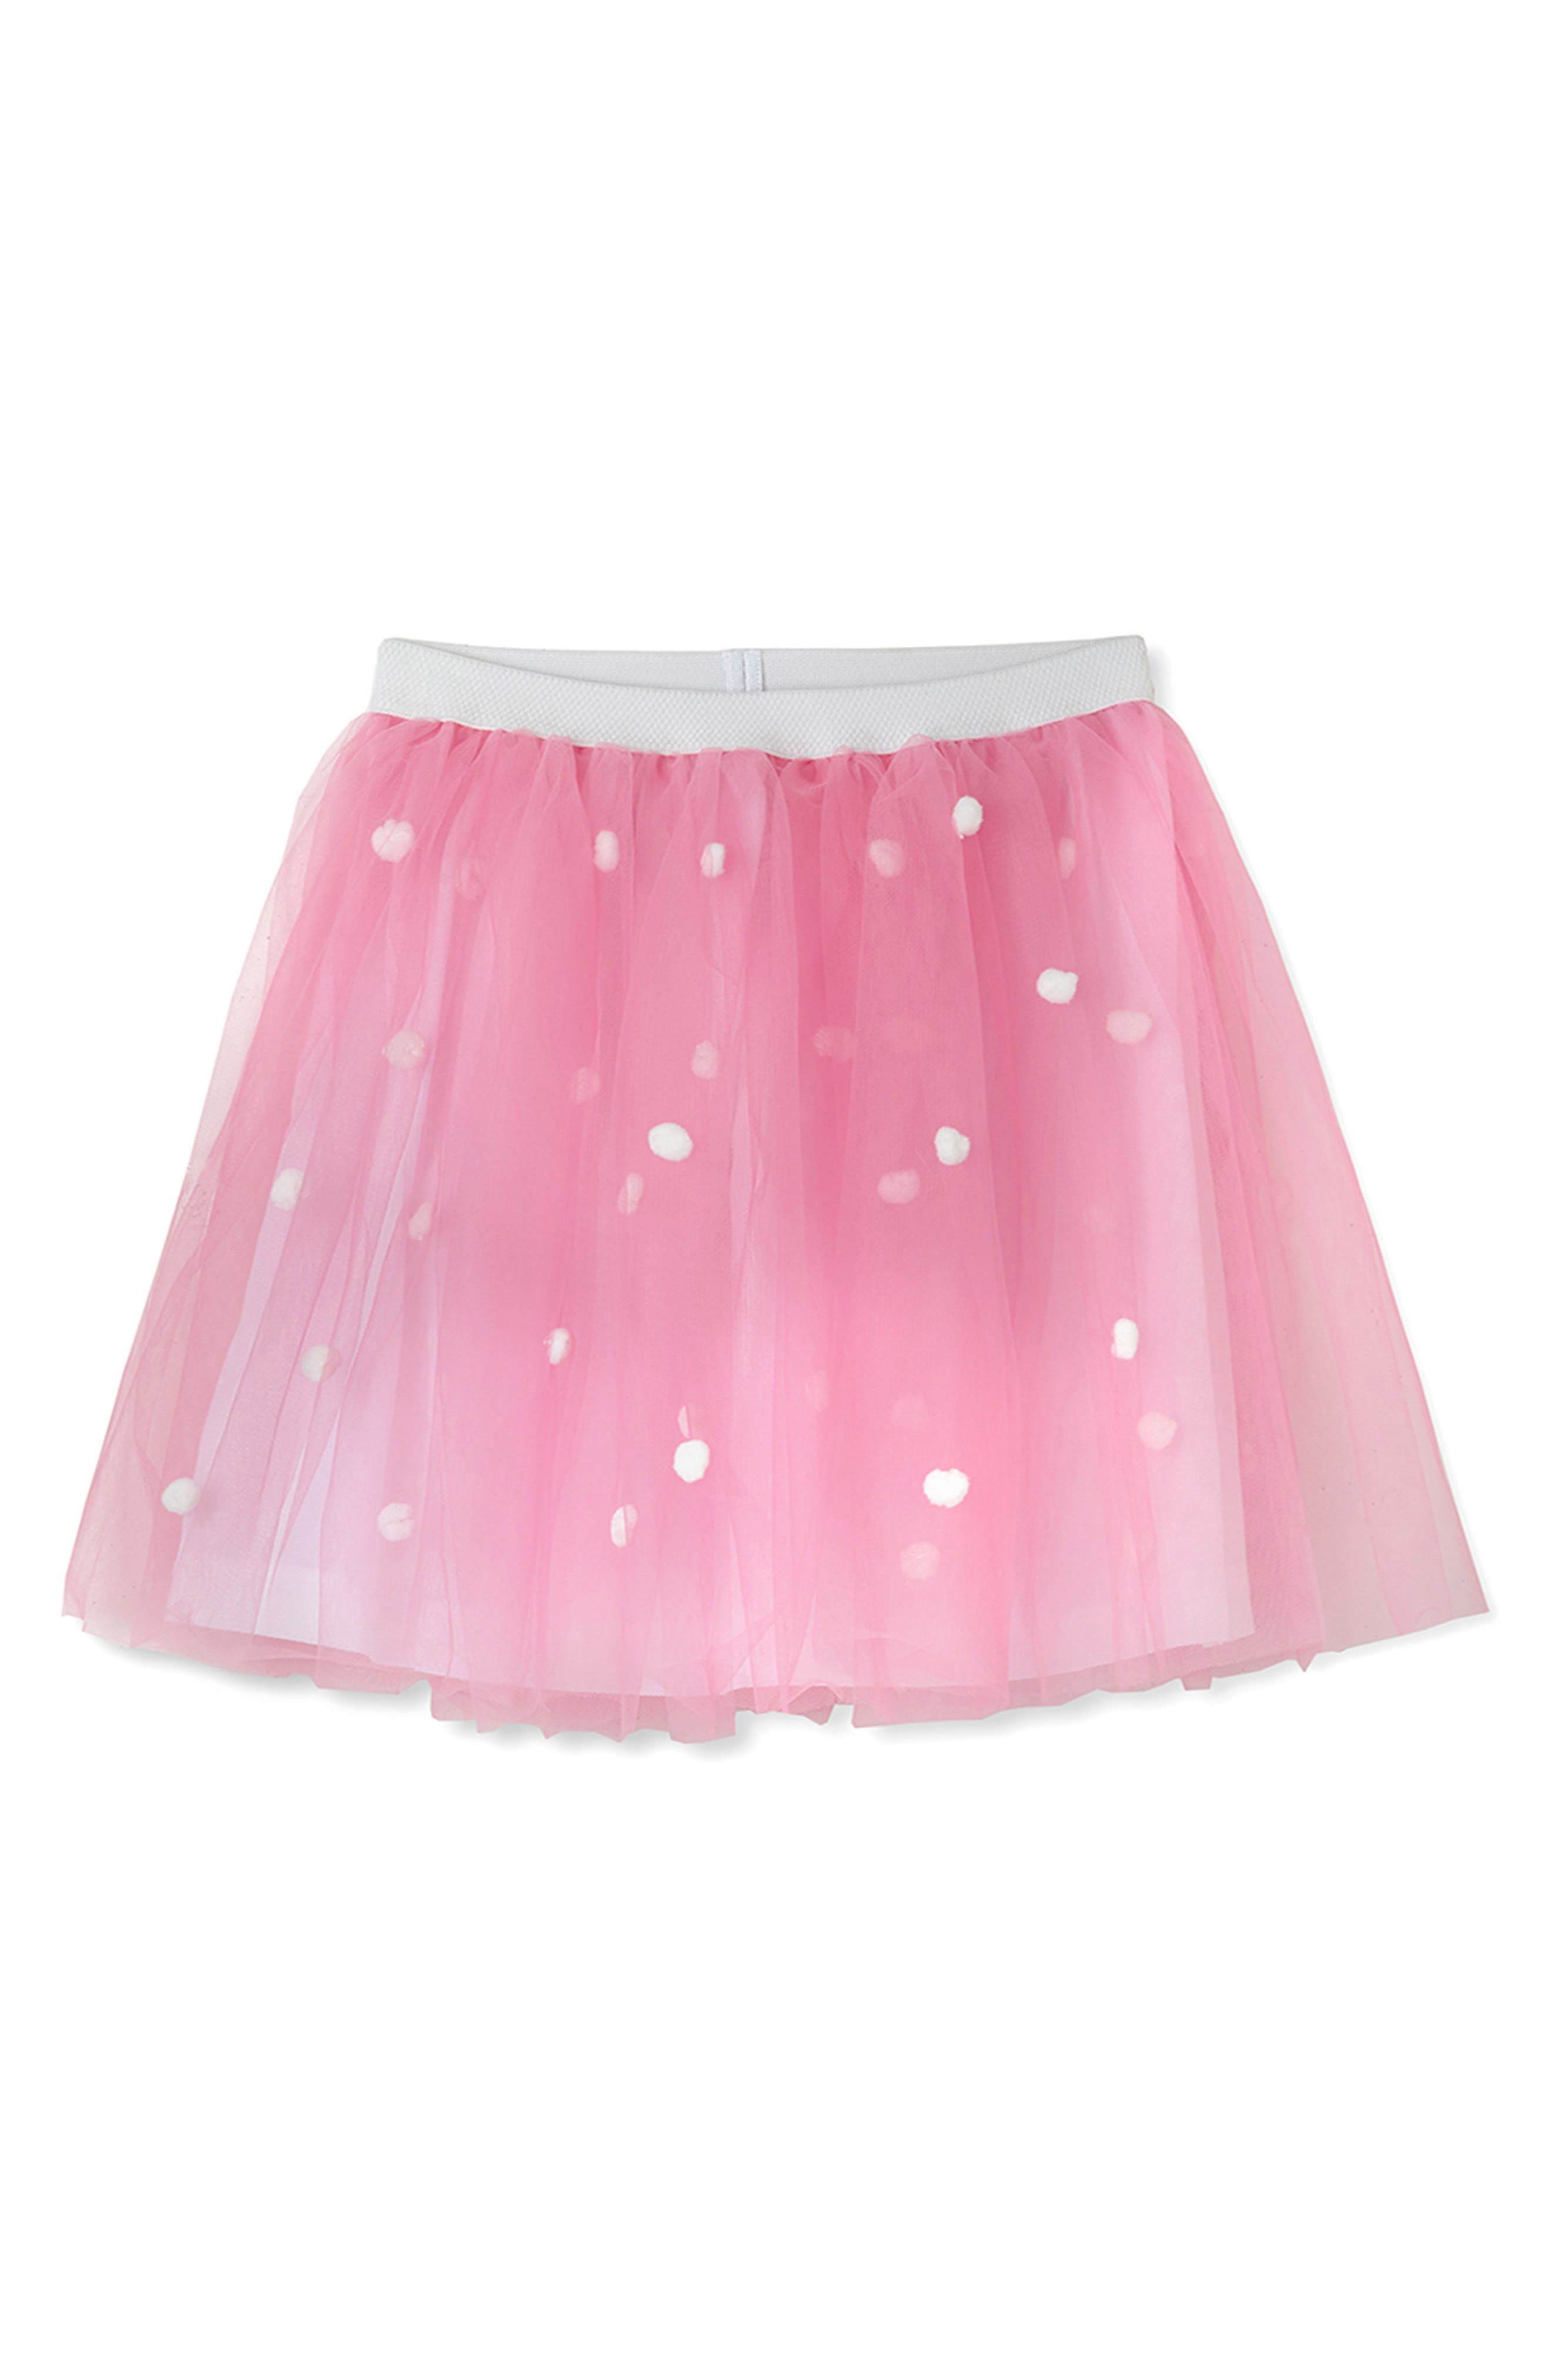 Tulle Skirt,                         Main,                         color, Pink